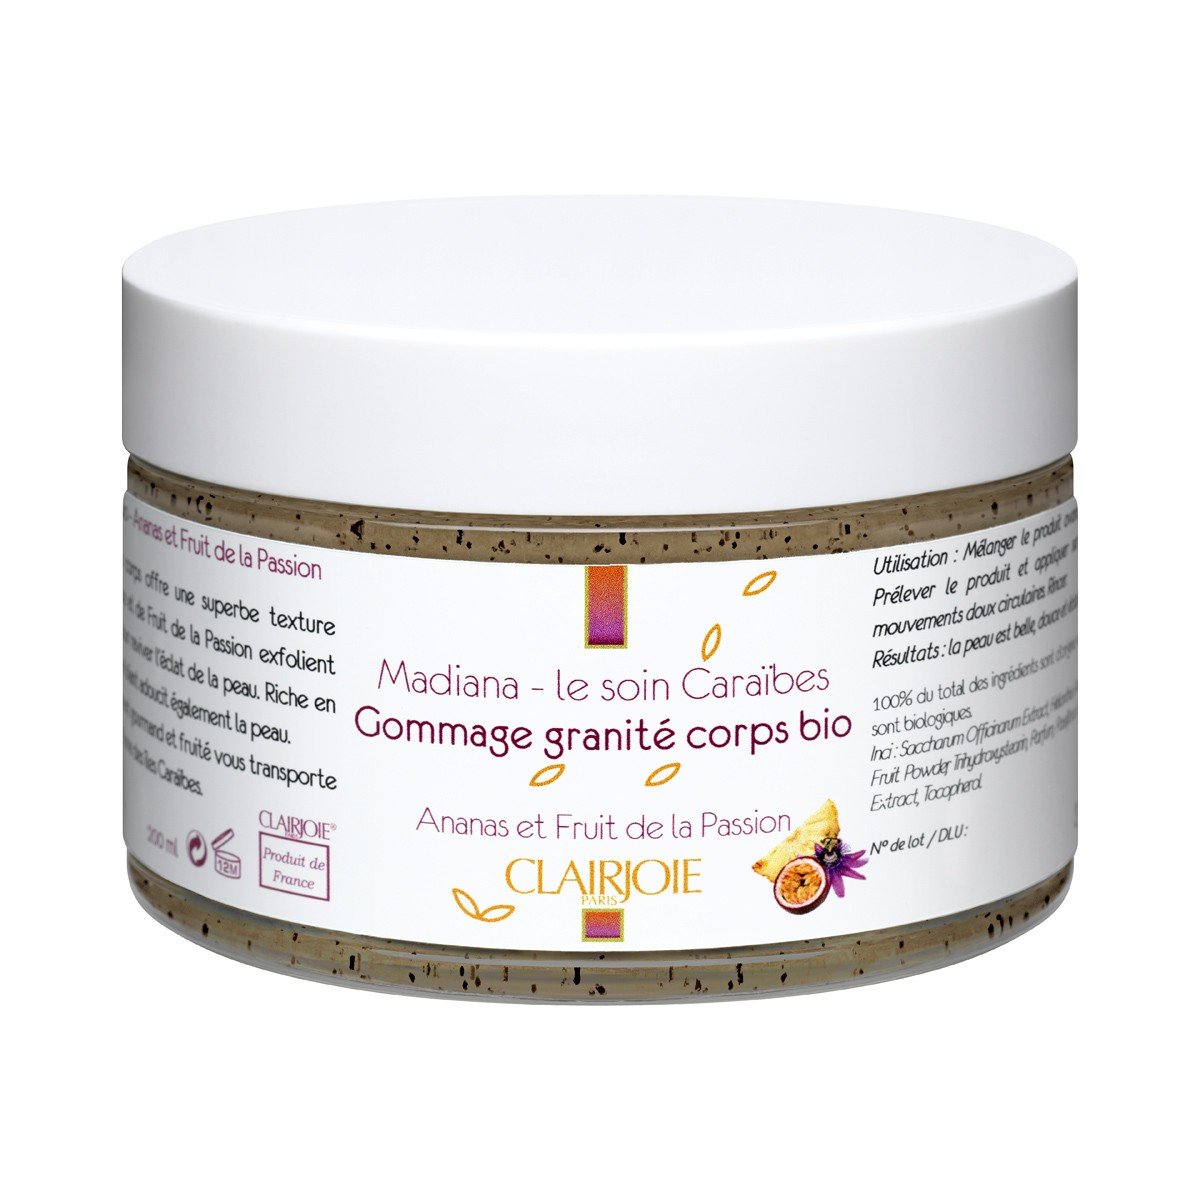 Gommage corps granité ananas passion